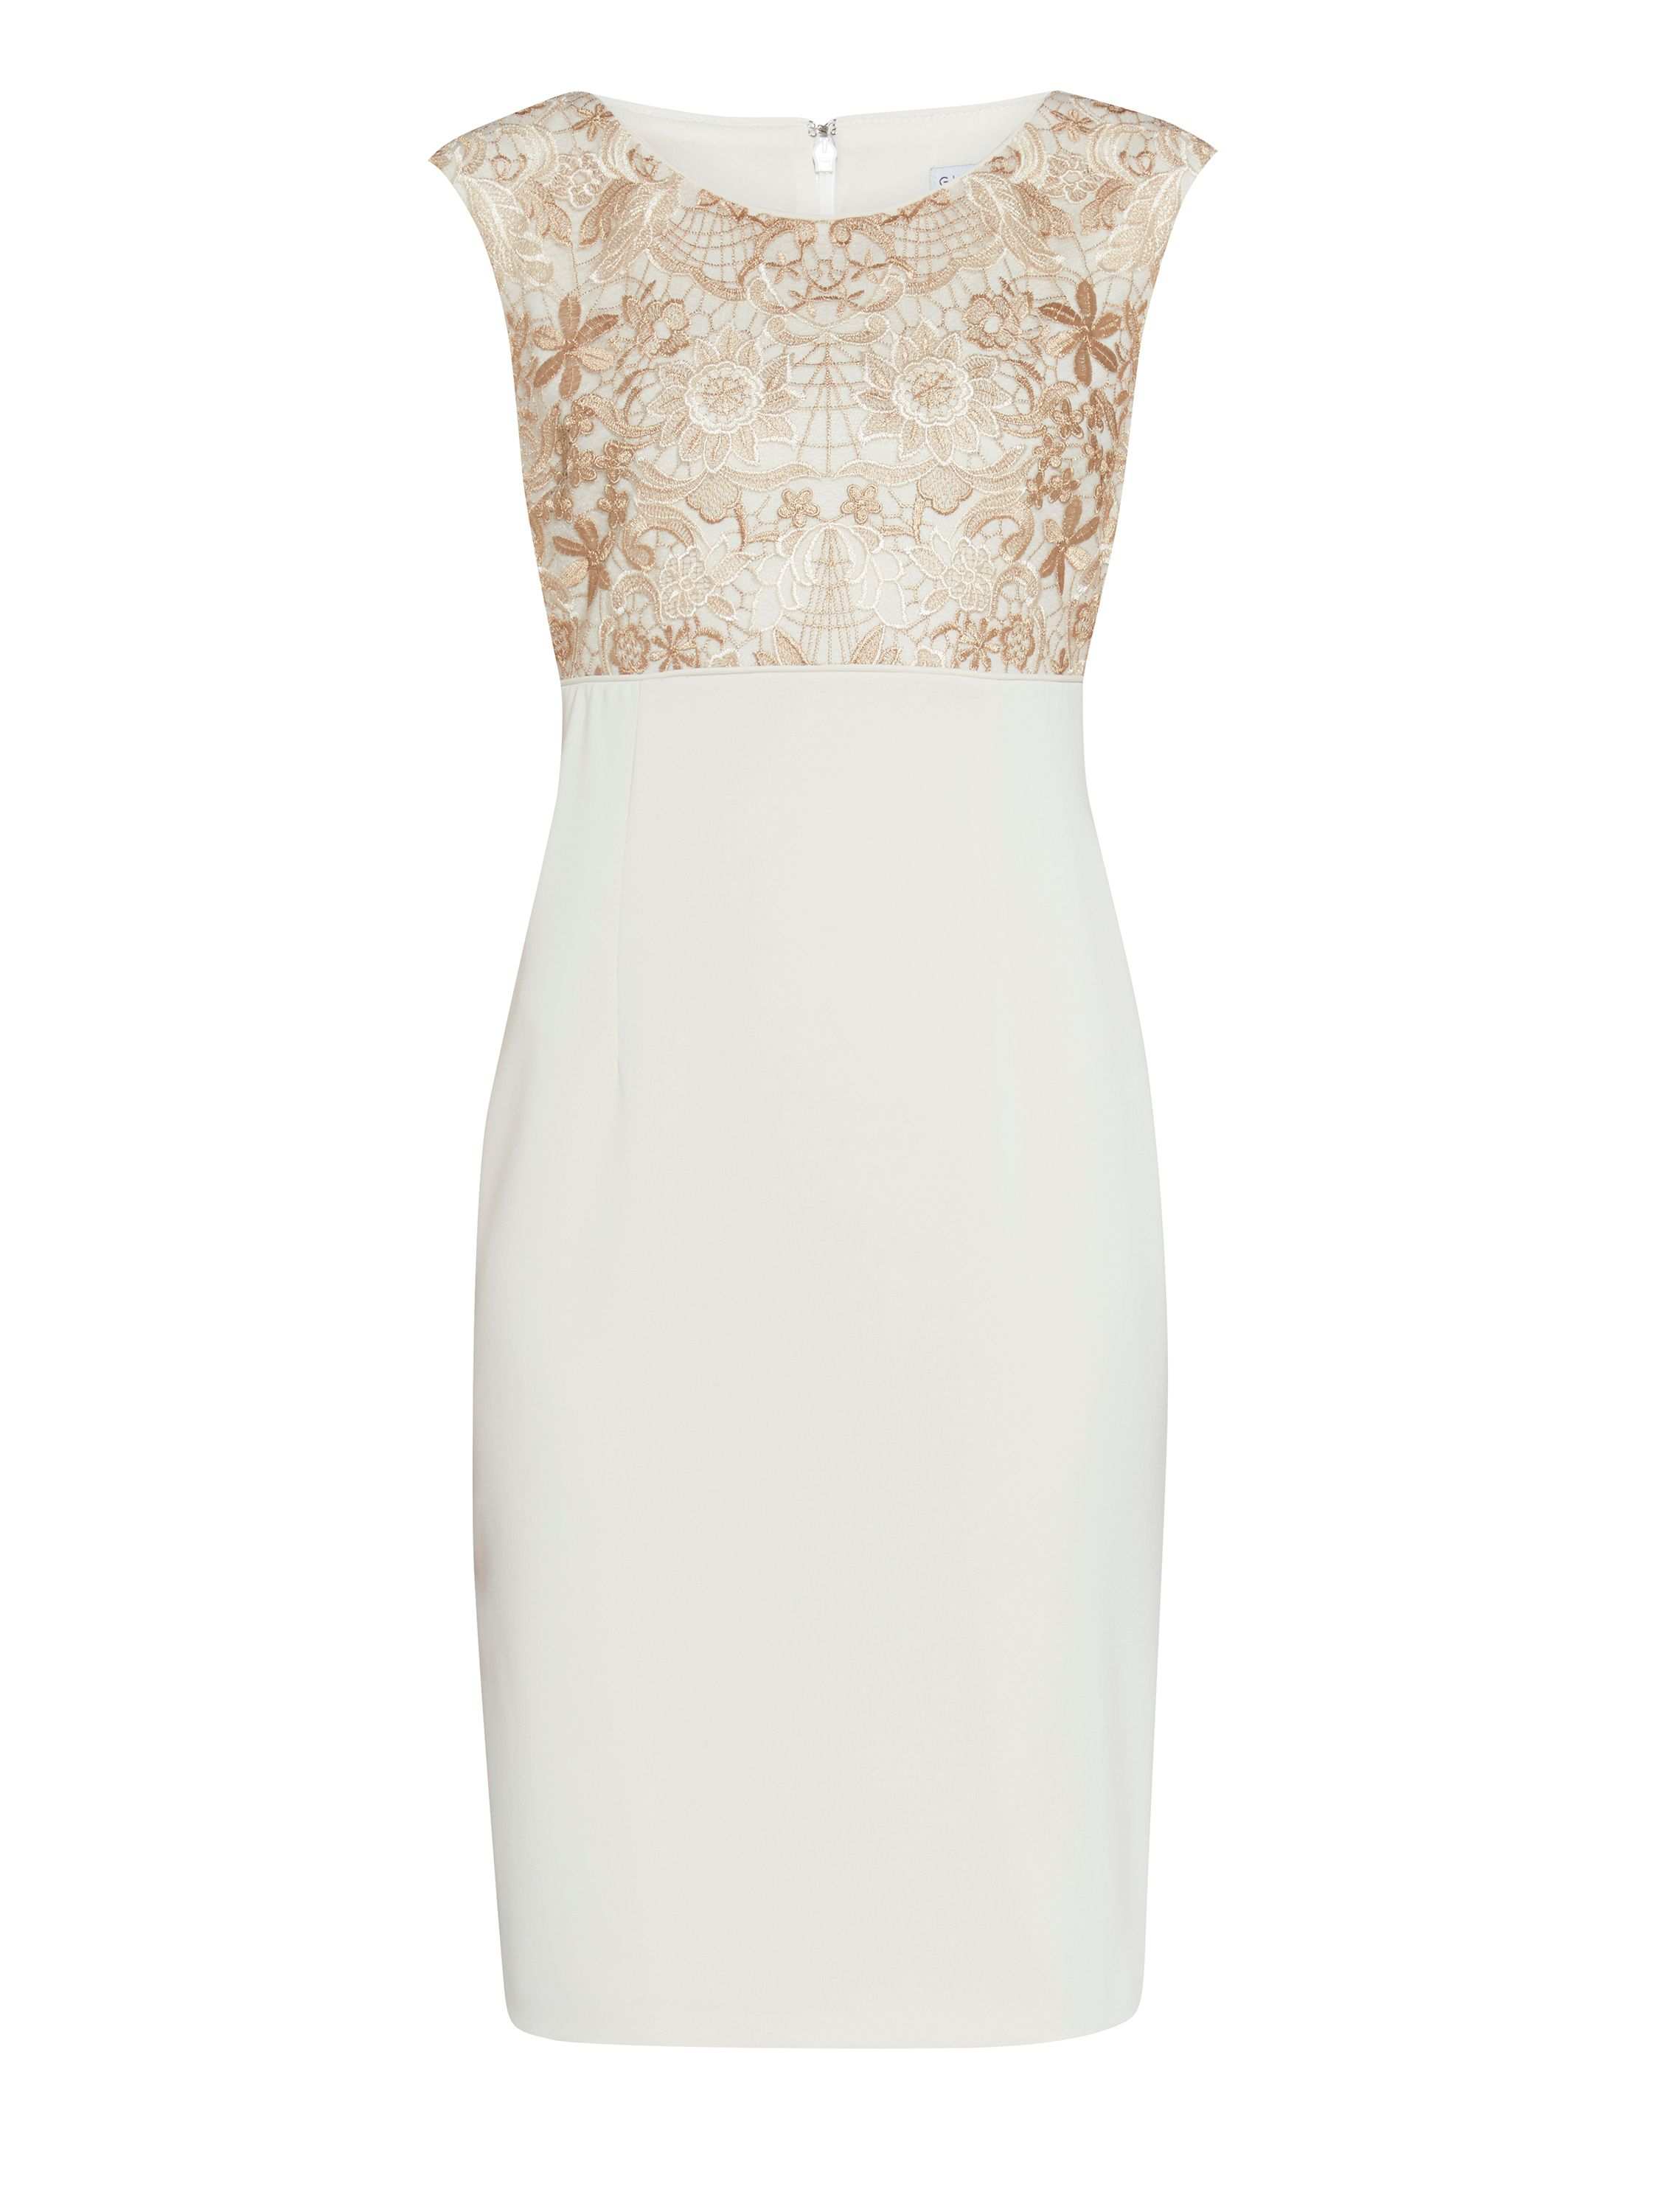 Gina Bacconi Crepe and floral embroidered mesh dress, Cream